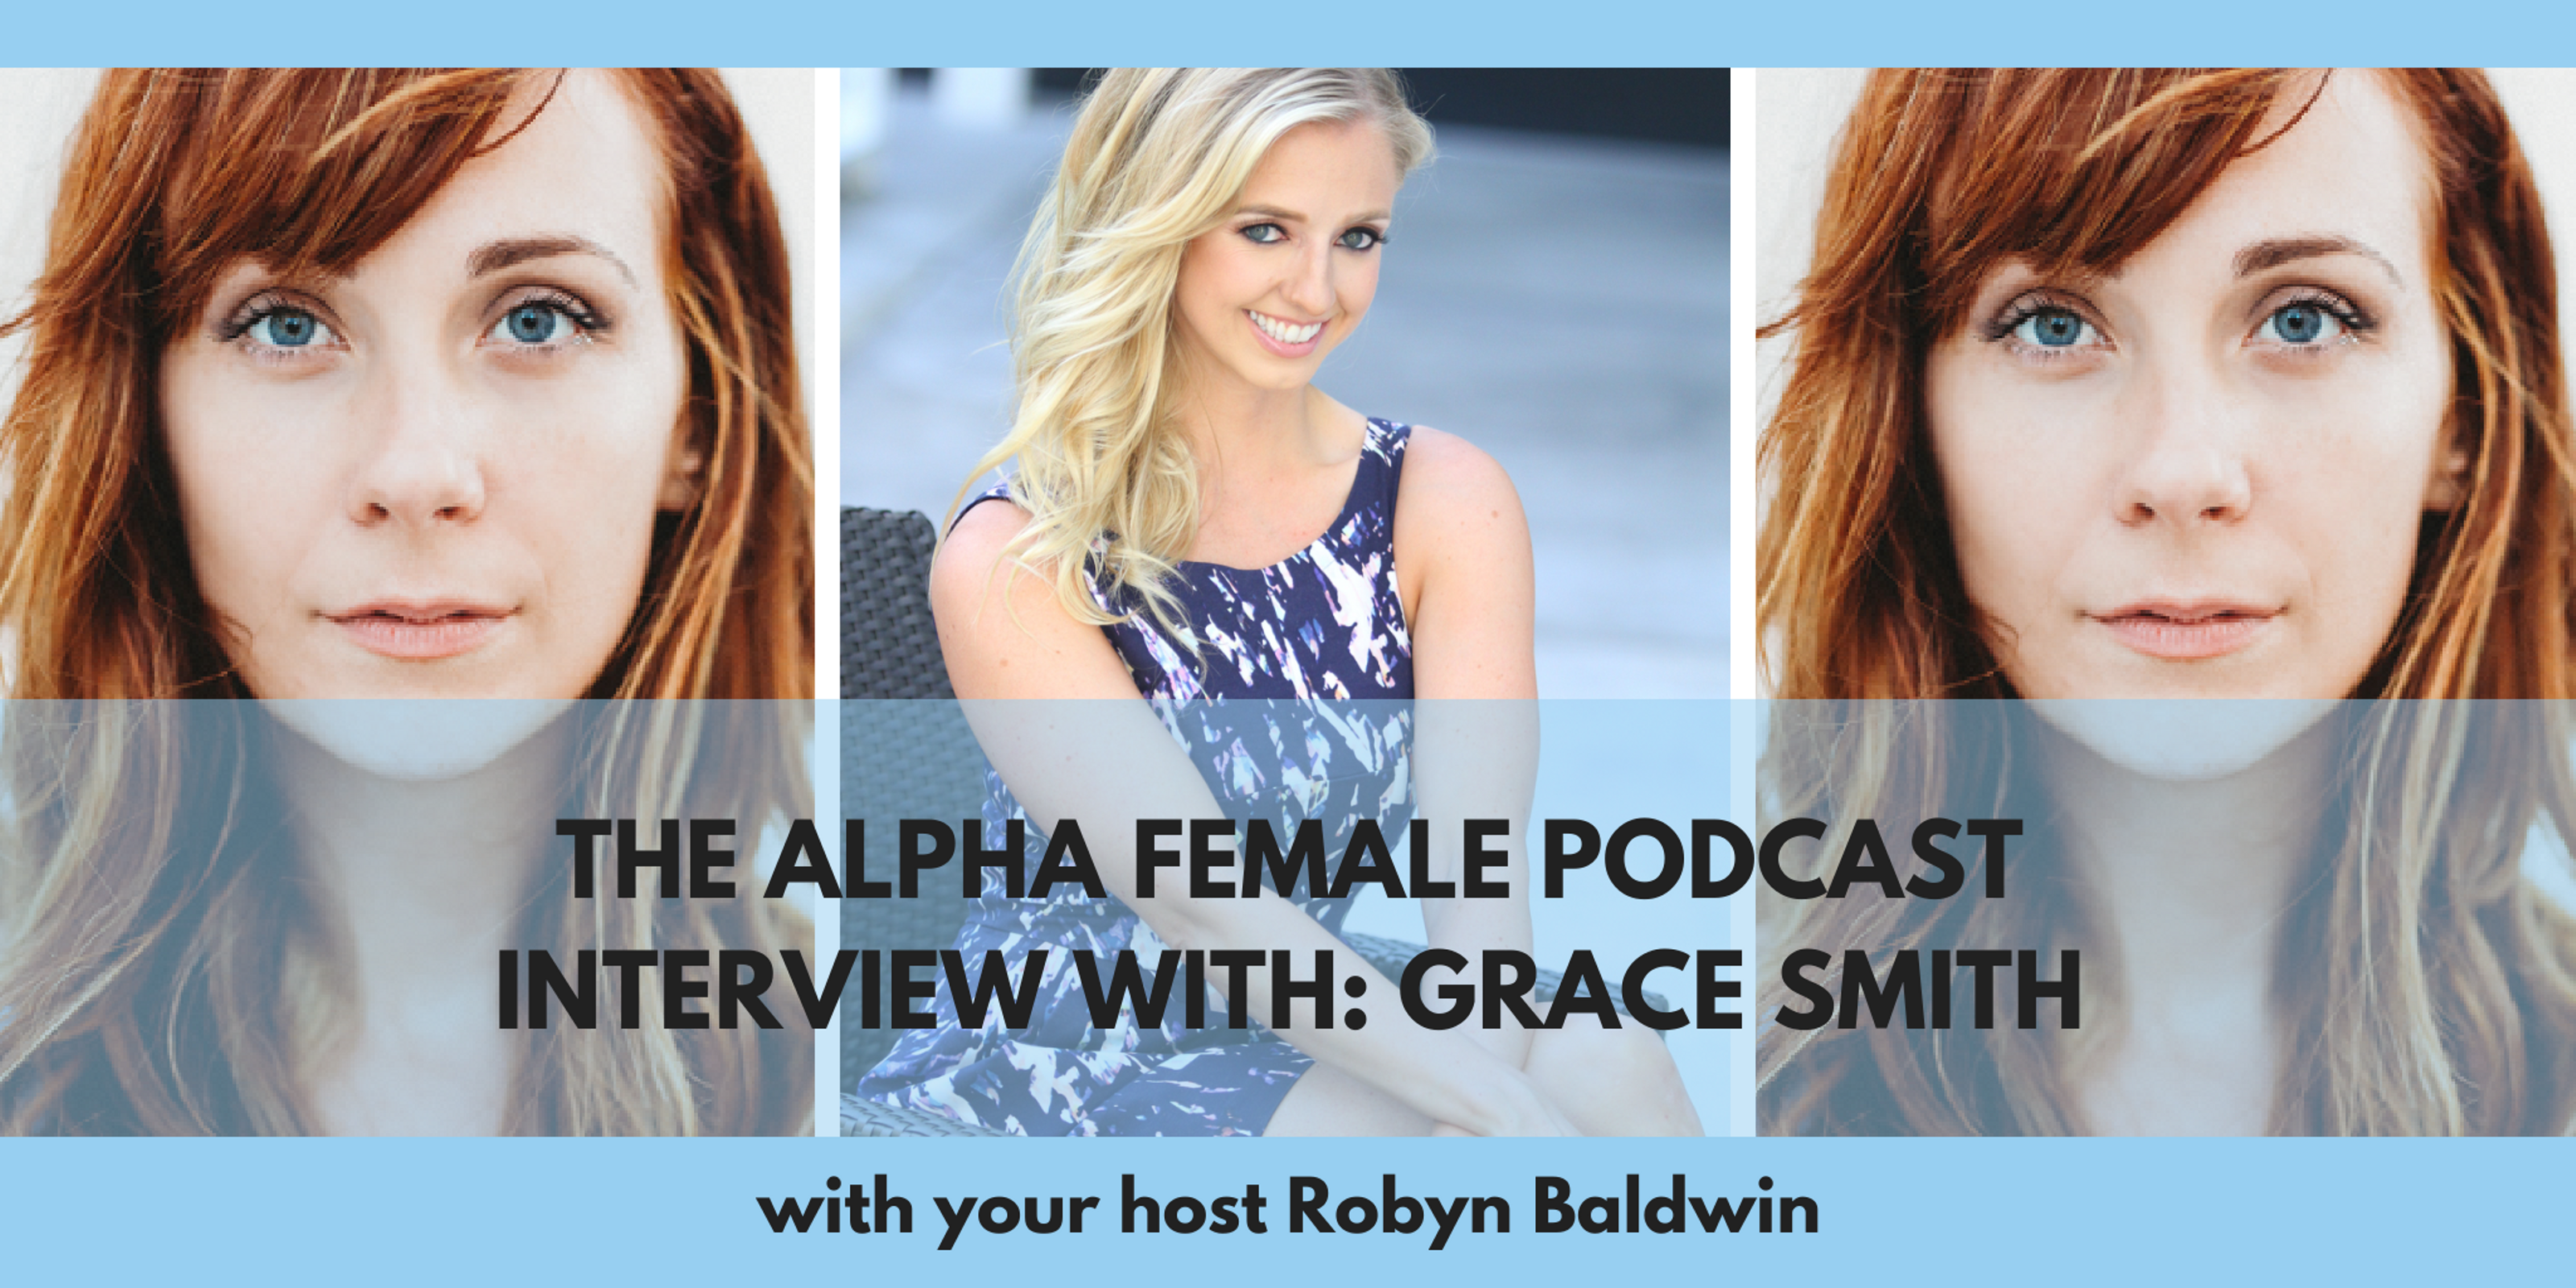 An Alpha Female Friday Podcast Interview with Grace Smith